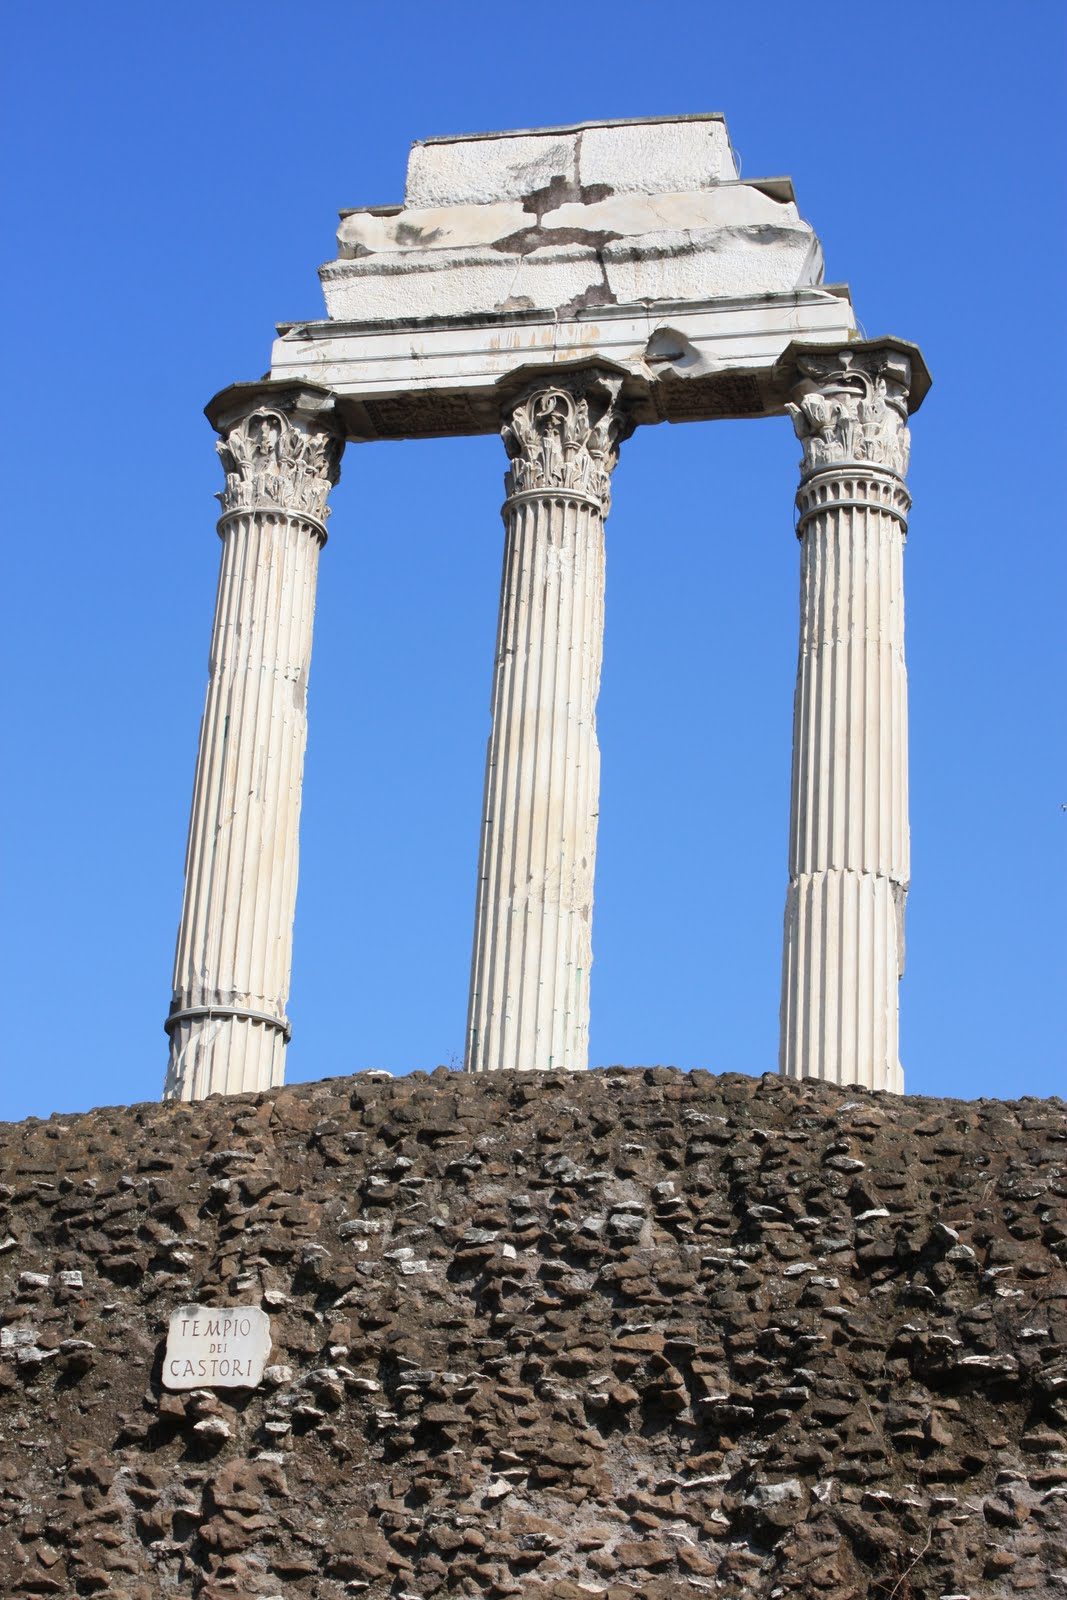 Temple Of Castor And Pollux, Forum, Rome